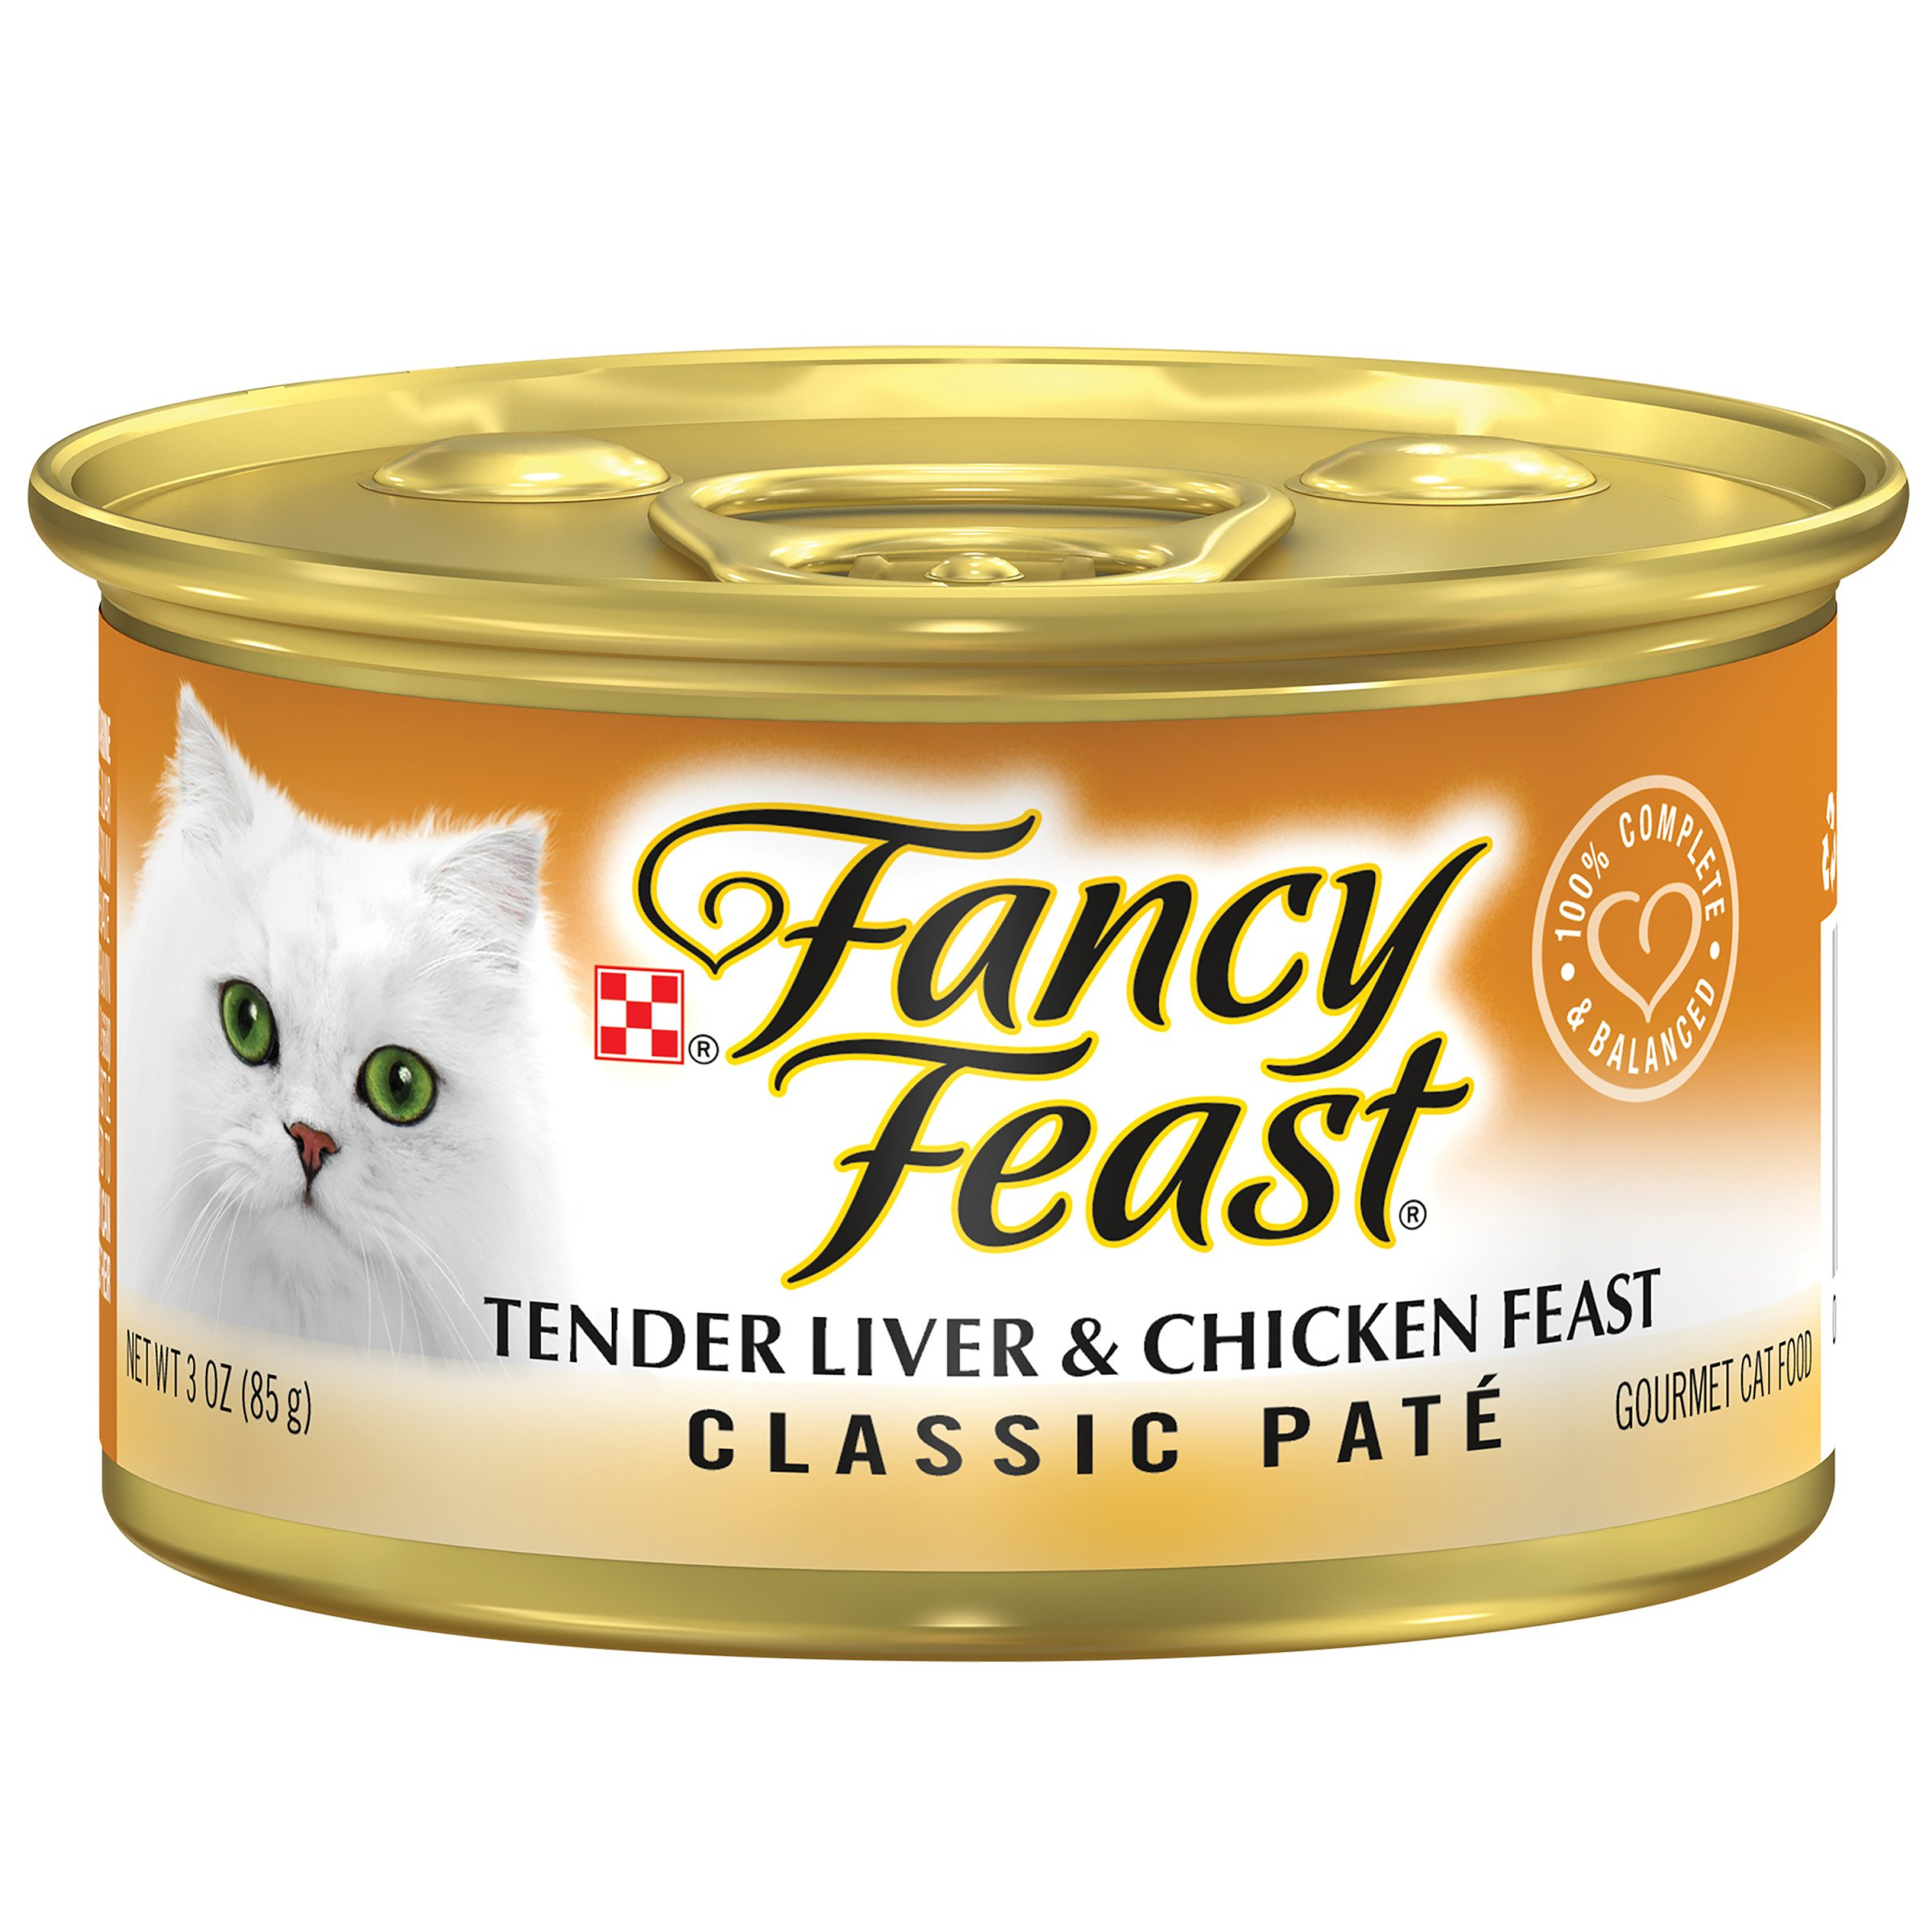 Purina Fancy Feast Classic Tender Liver & Chicken Feast Cat Food - (24) 3 oz. Pull-top Can